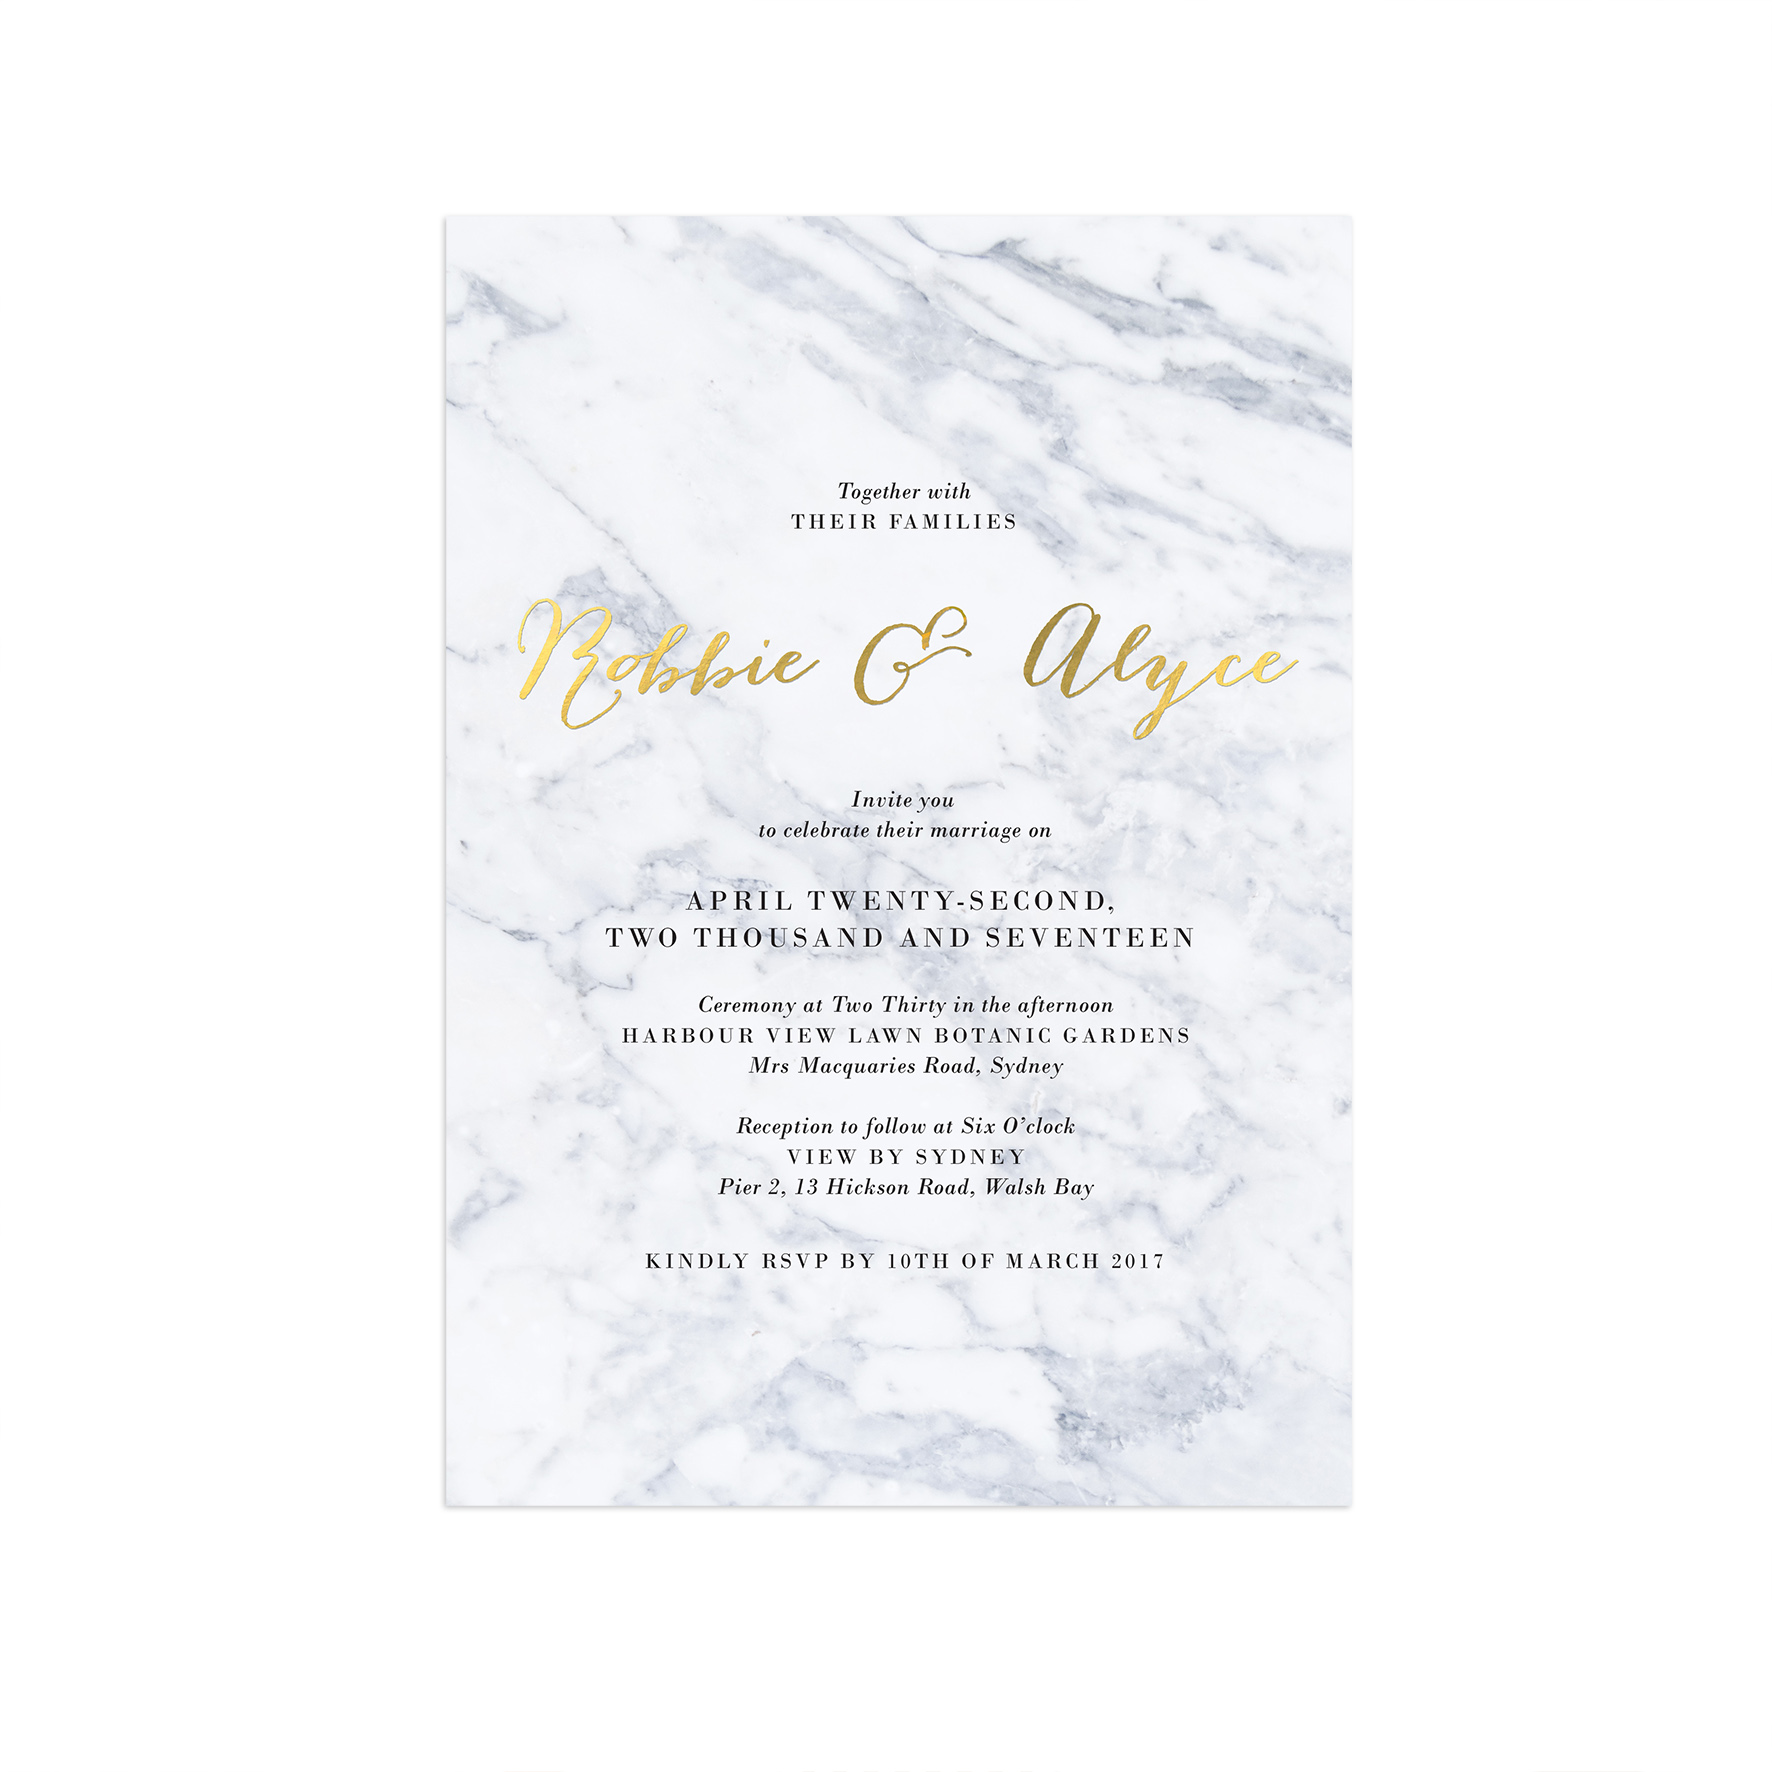 Embossed Wedding Invitations For A Exquisite Invitation Design With Layout 1 - Gold Foil Wedding ...